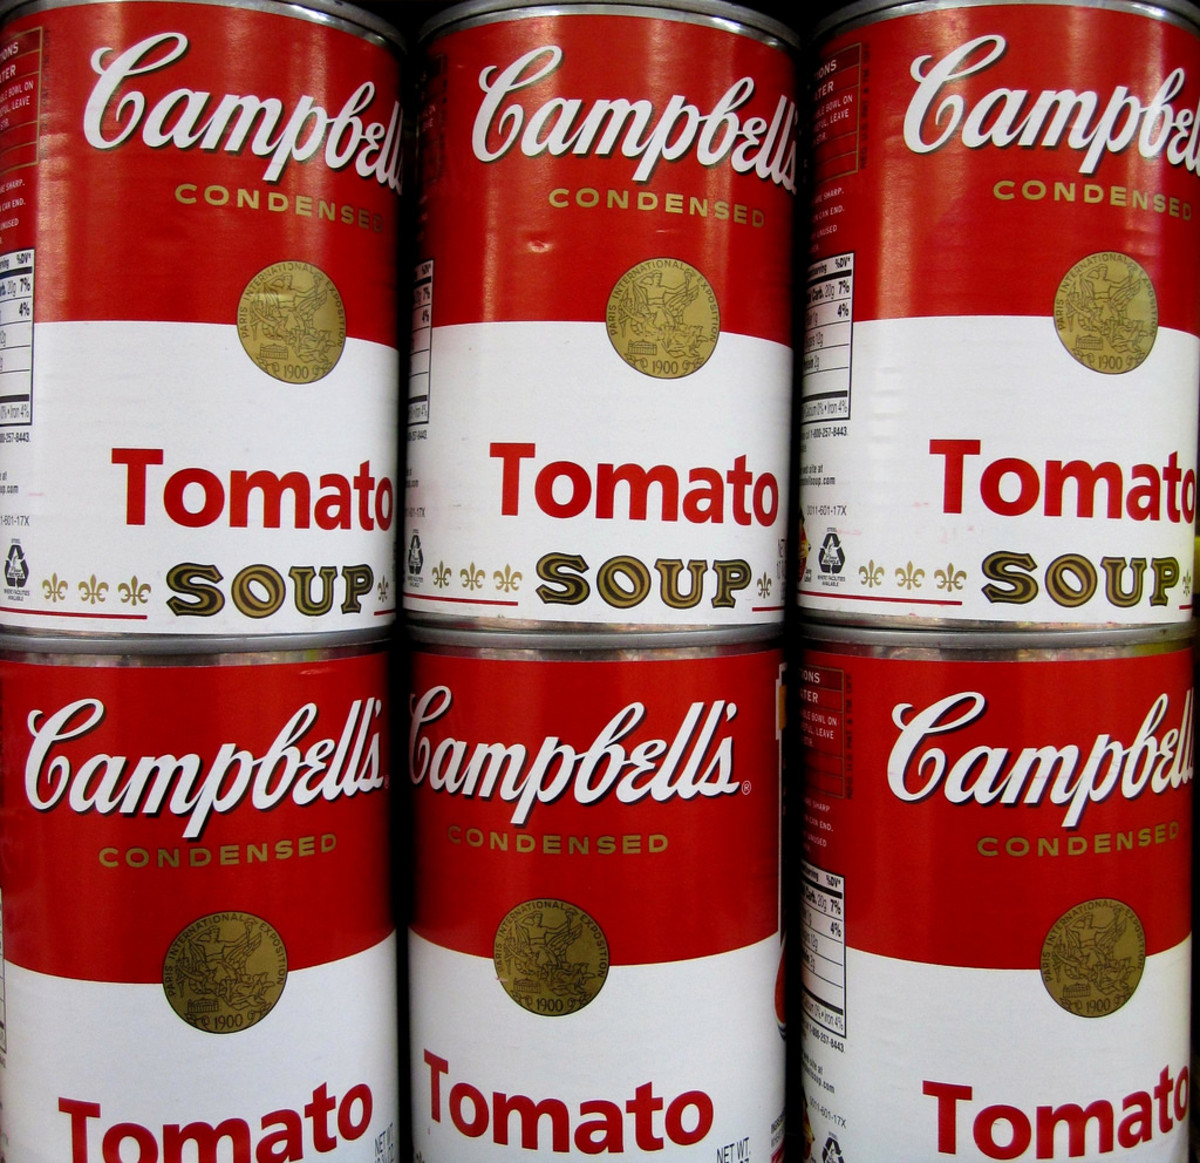 Plant-based foods in focus at Campbell Soup